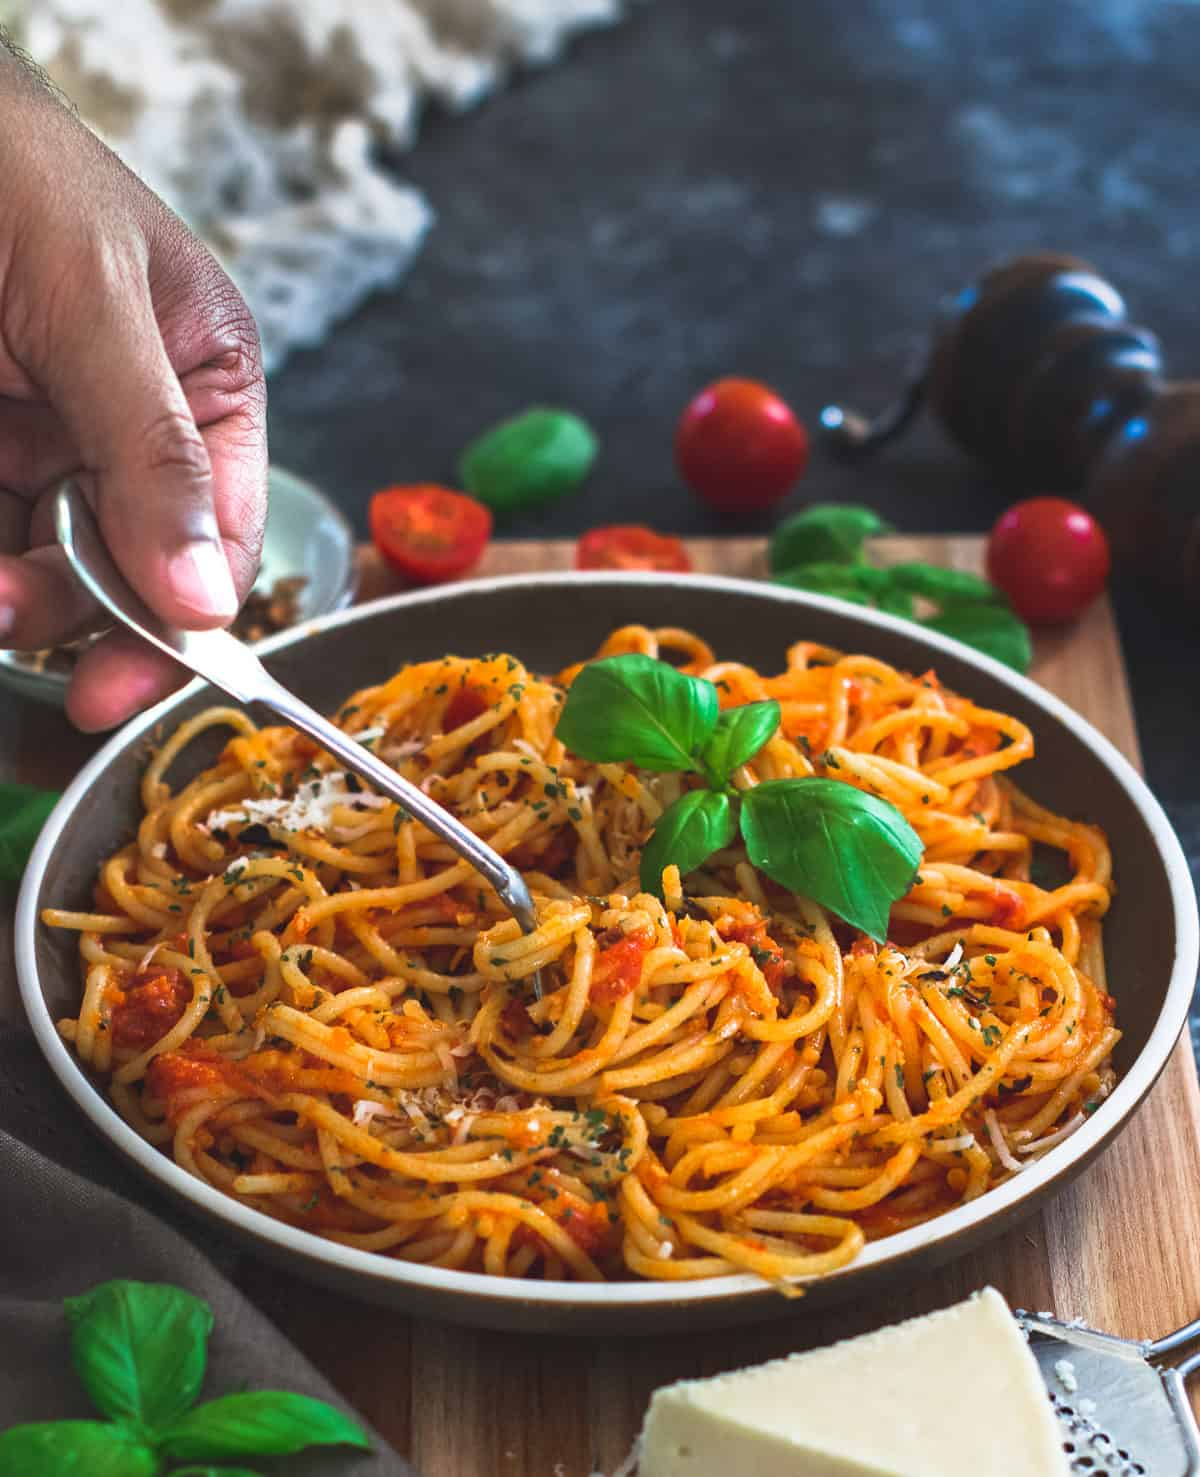 Pasta Arrabiata being served with a fork